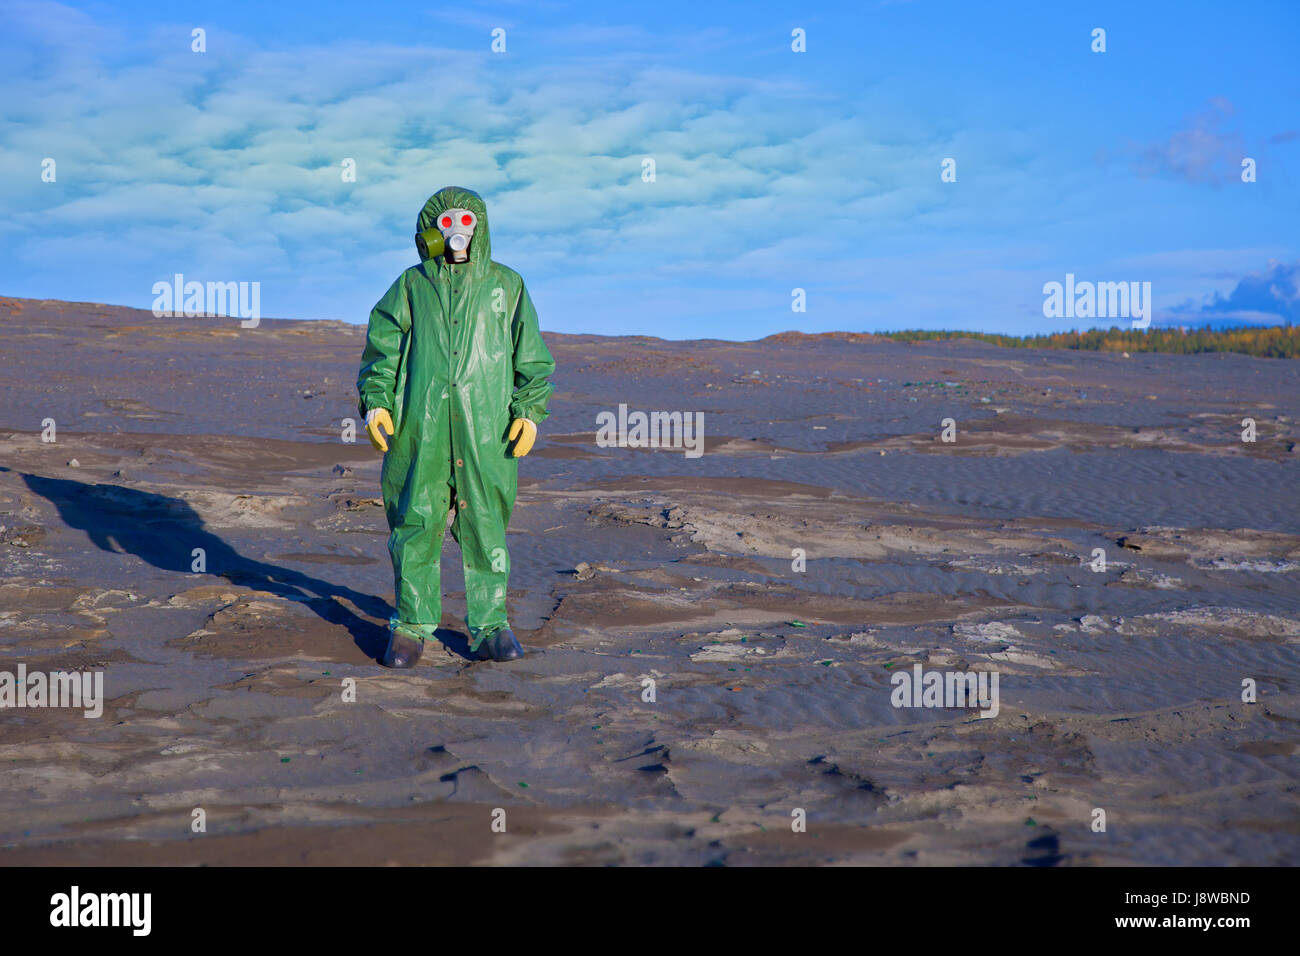 humans, human beings, people, folk, persons, human, human being, person, one, Stock Photo